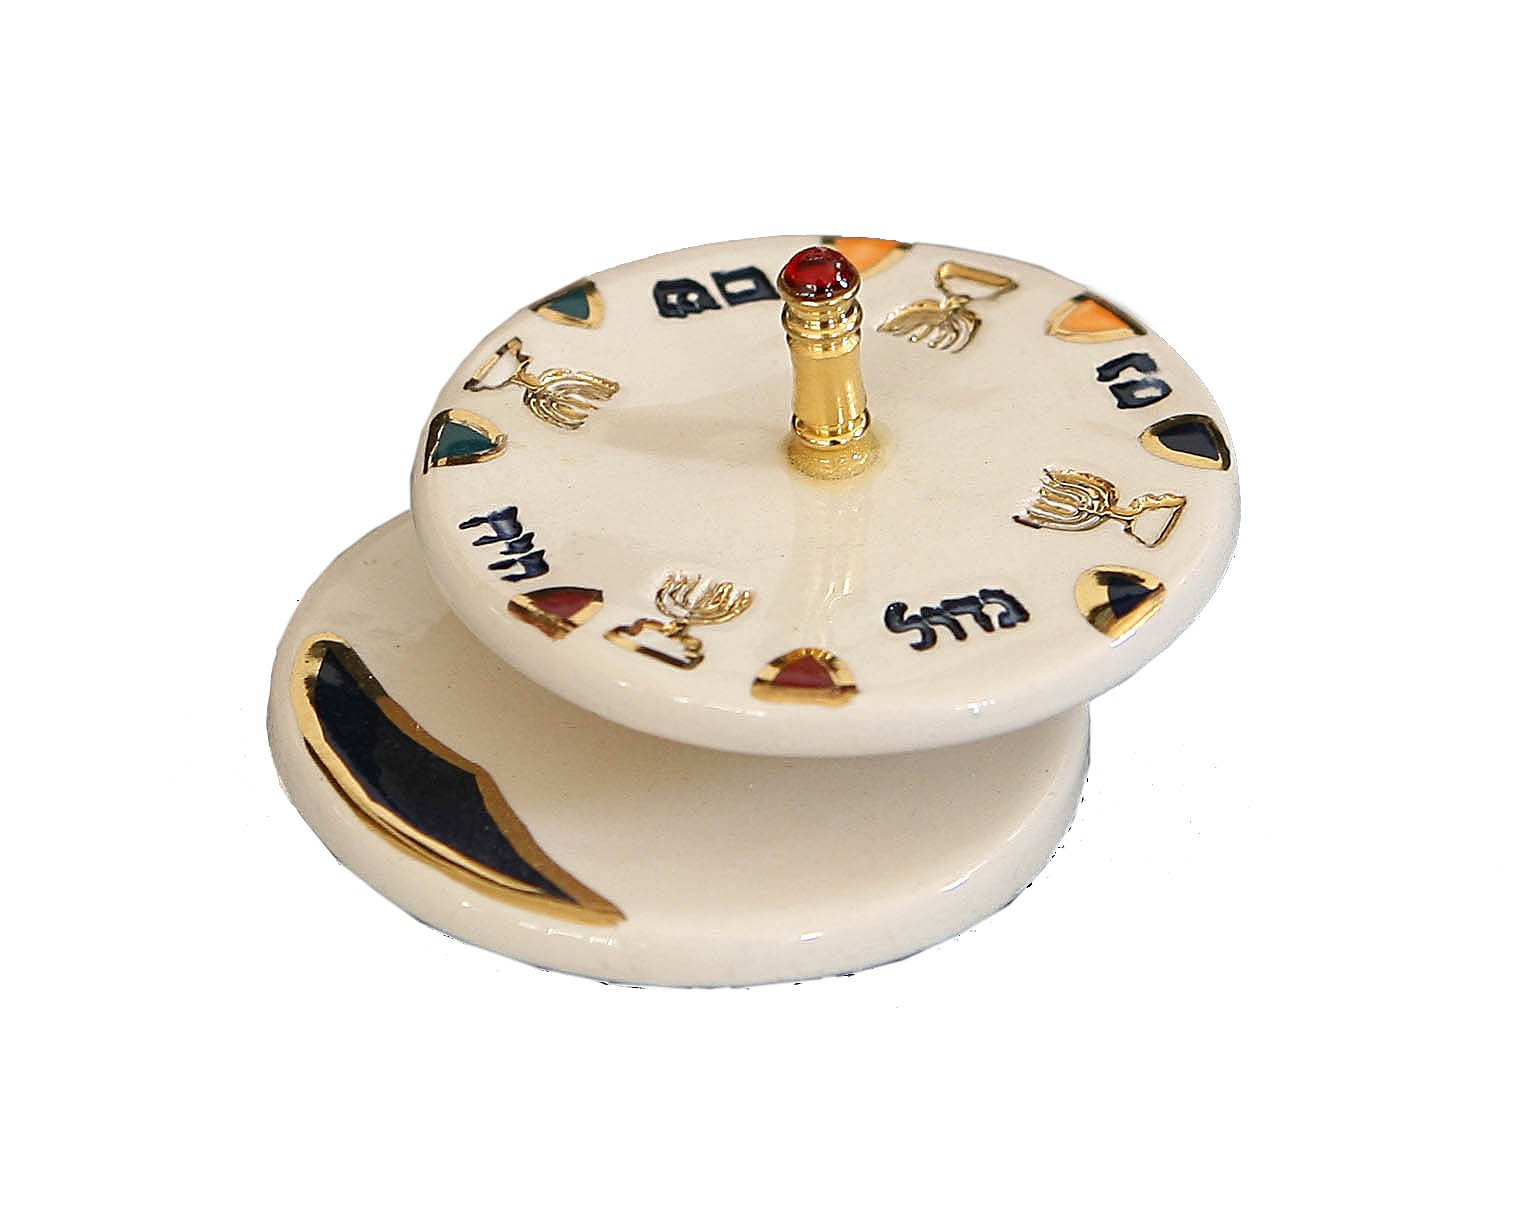 Judaica Hanukkah Chanukkah Dreidel Ceramic Colorful With Gold Plated Handle Design , Spinning Top. Hand Made By The Renown Artist Eran Grebler . Size: 3.0'' x 1.65''